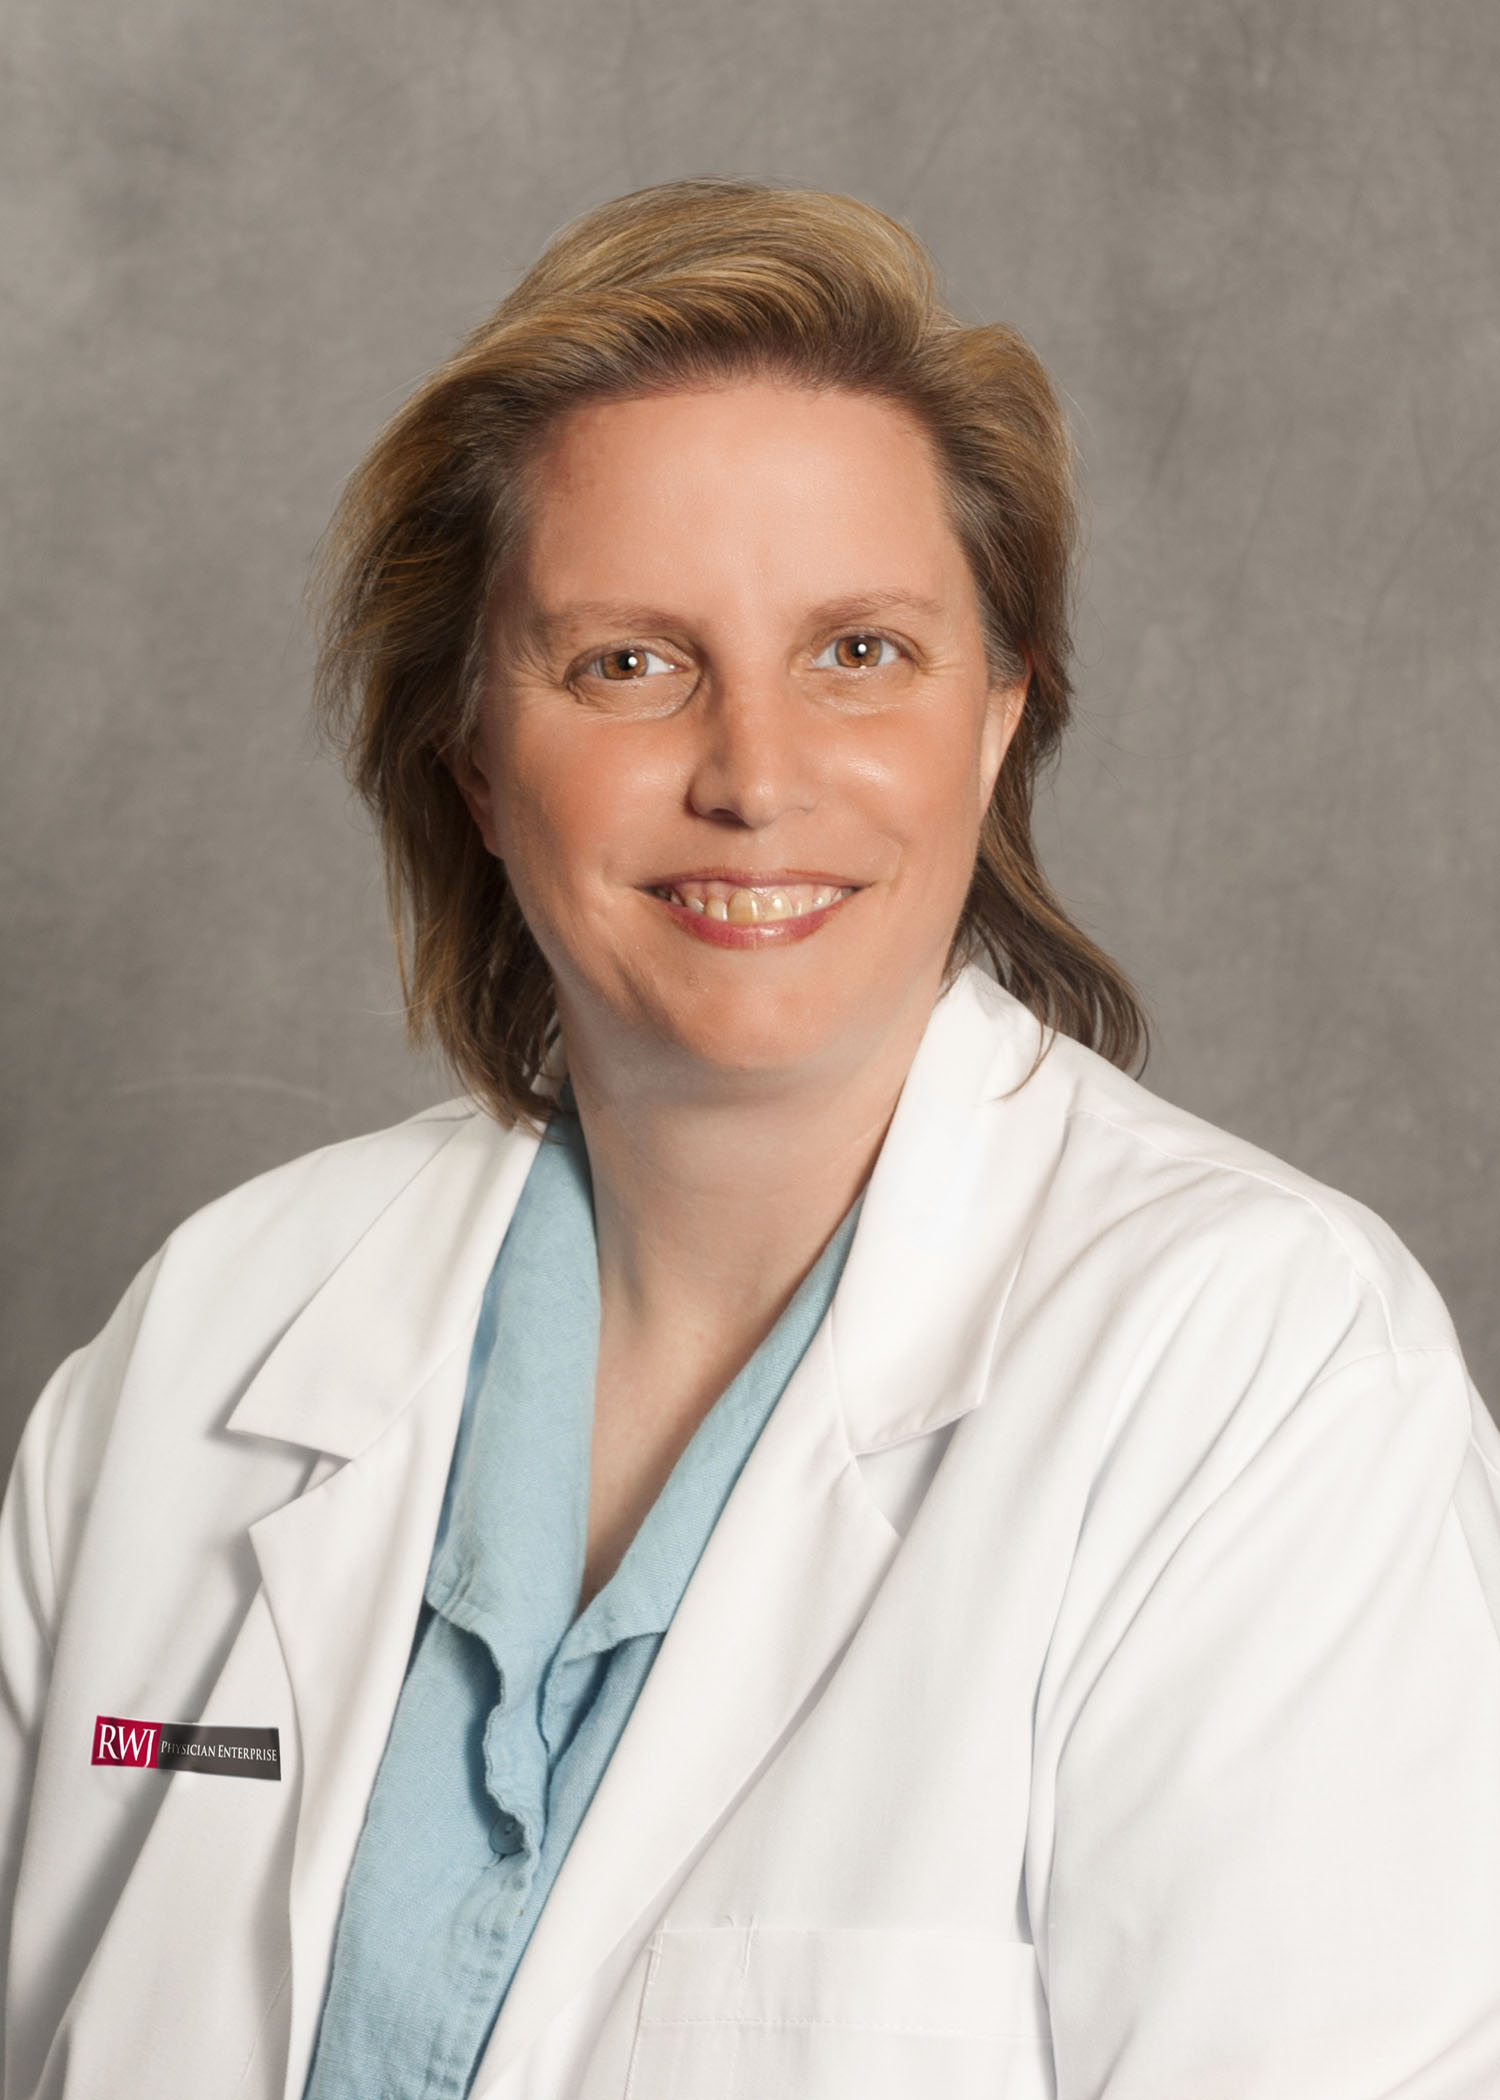 Dr. Beth Balinski, DO